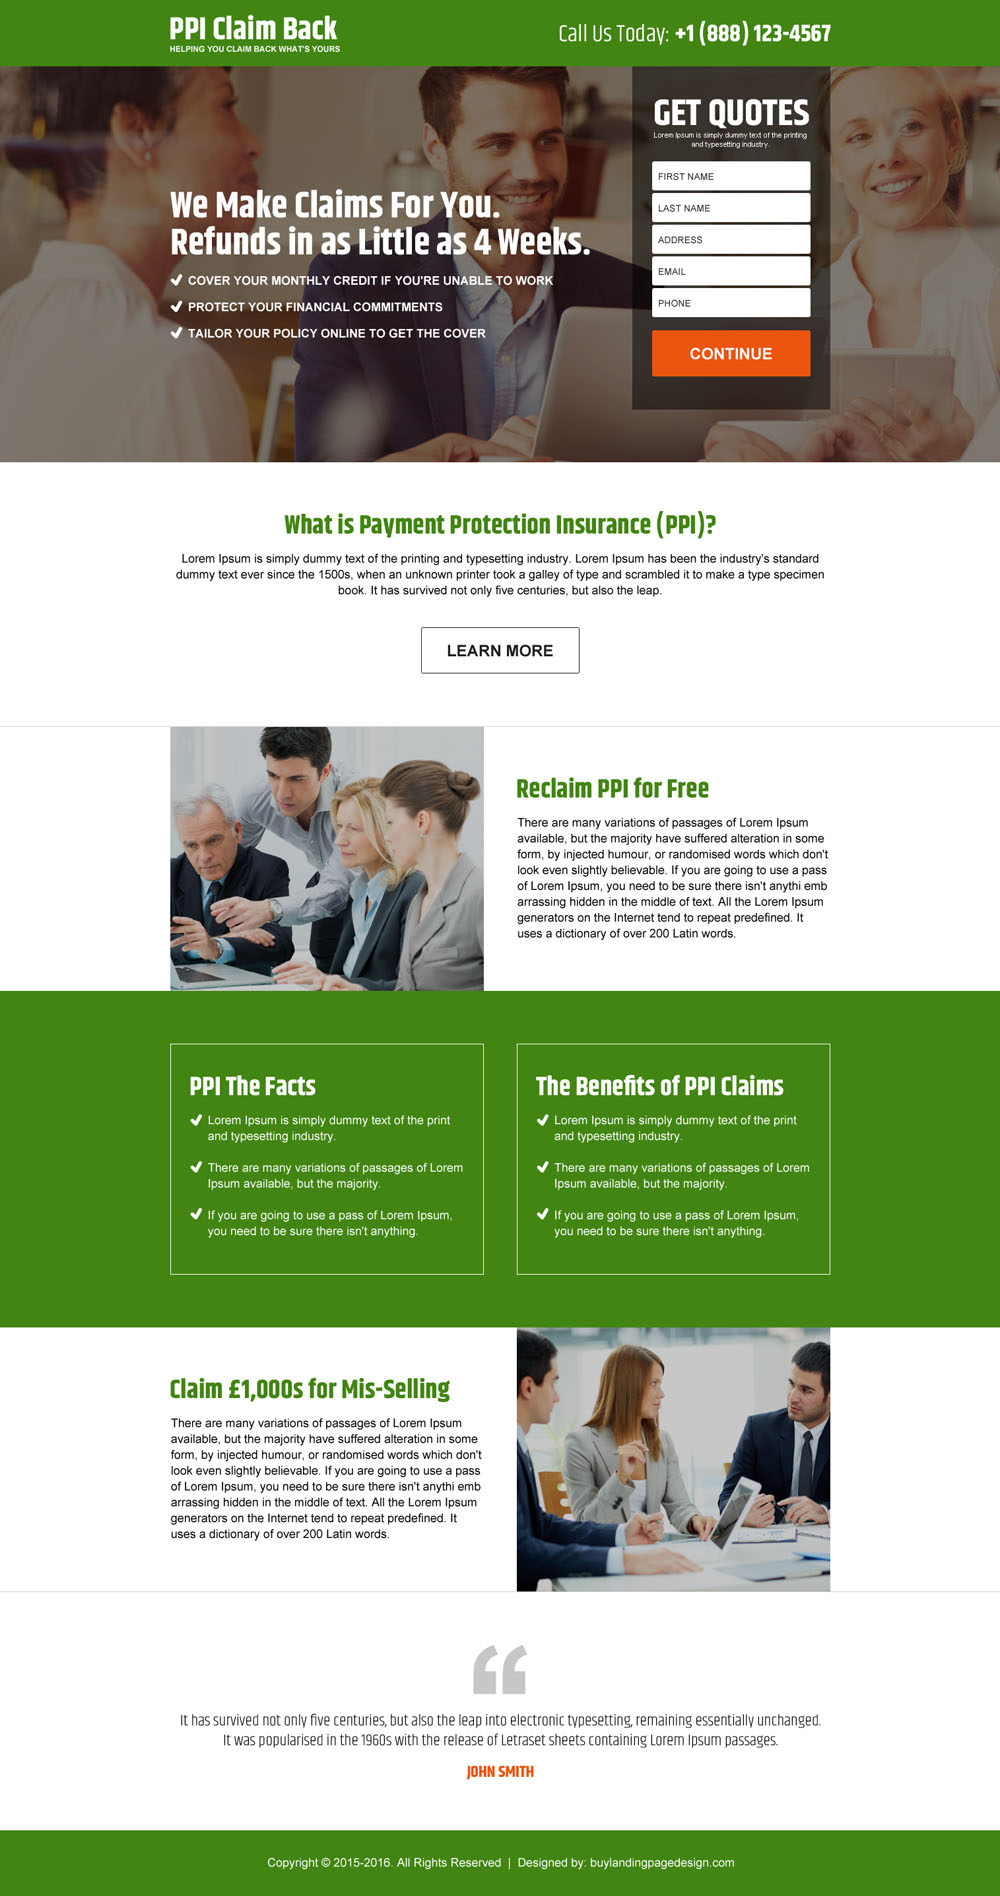 payment-protection-insurance-get-free-quote-lead-gen-landing-page-001